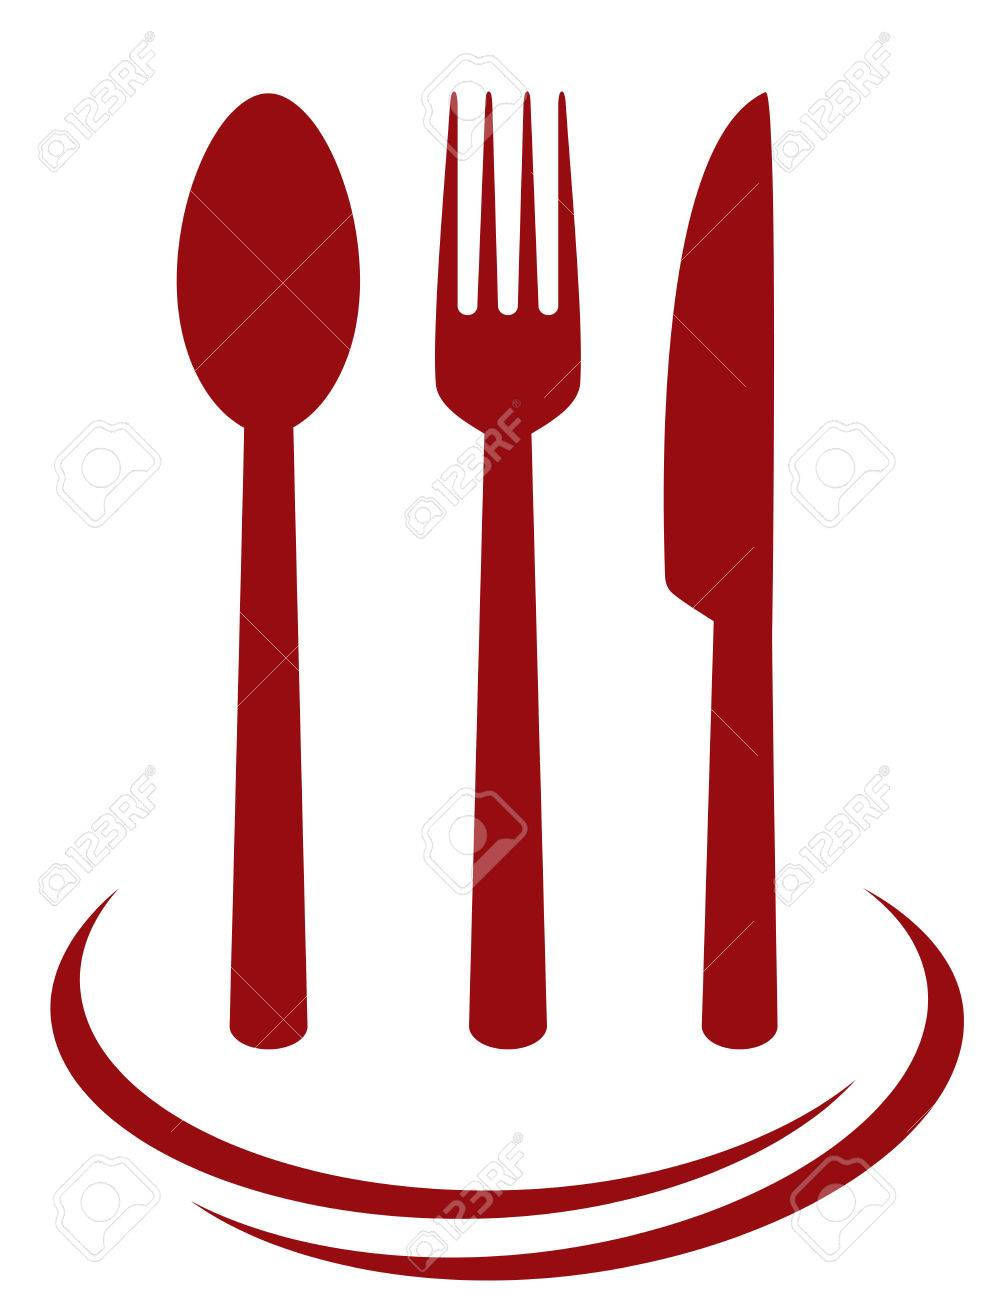 red cutlery set with decorative lines on white background royalty